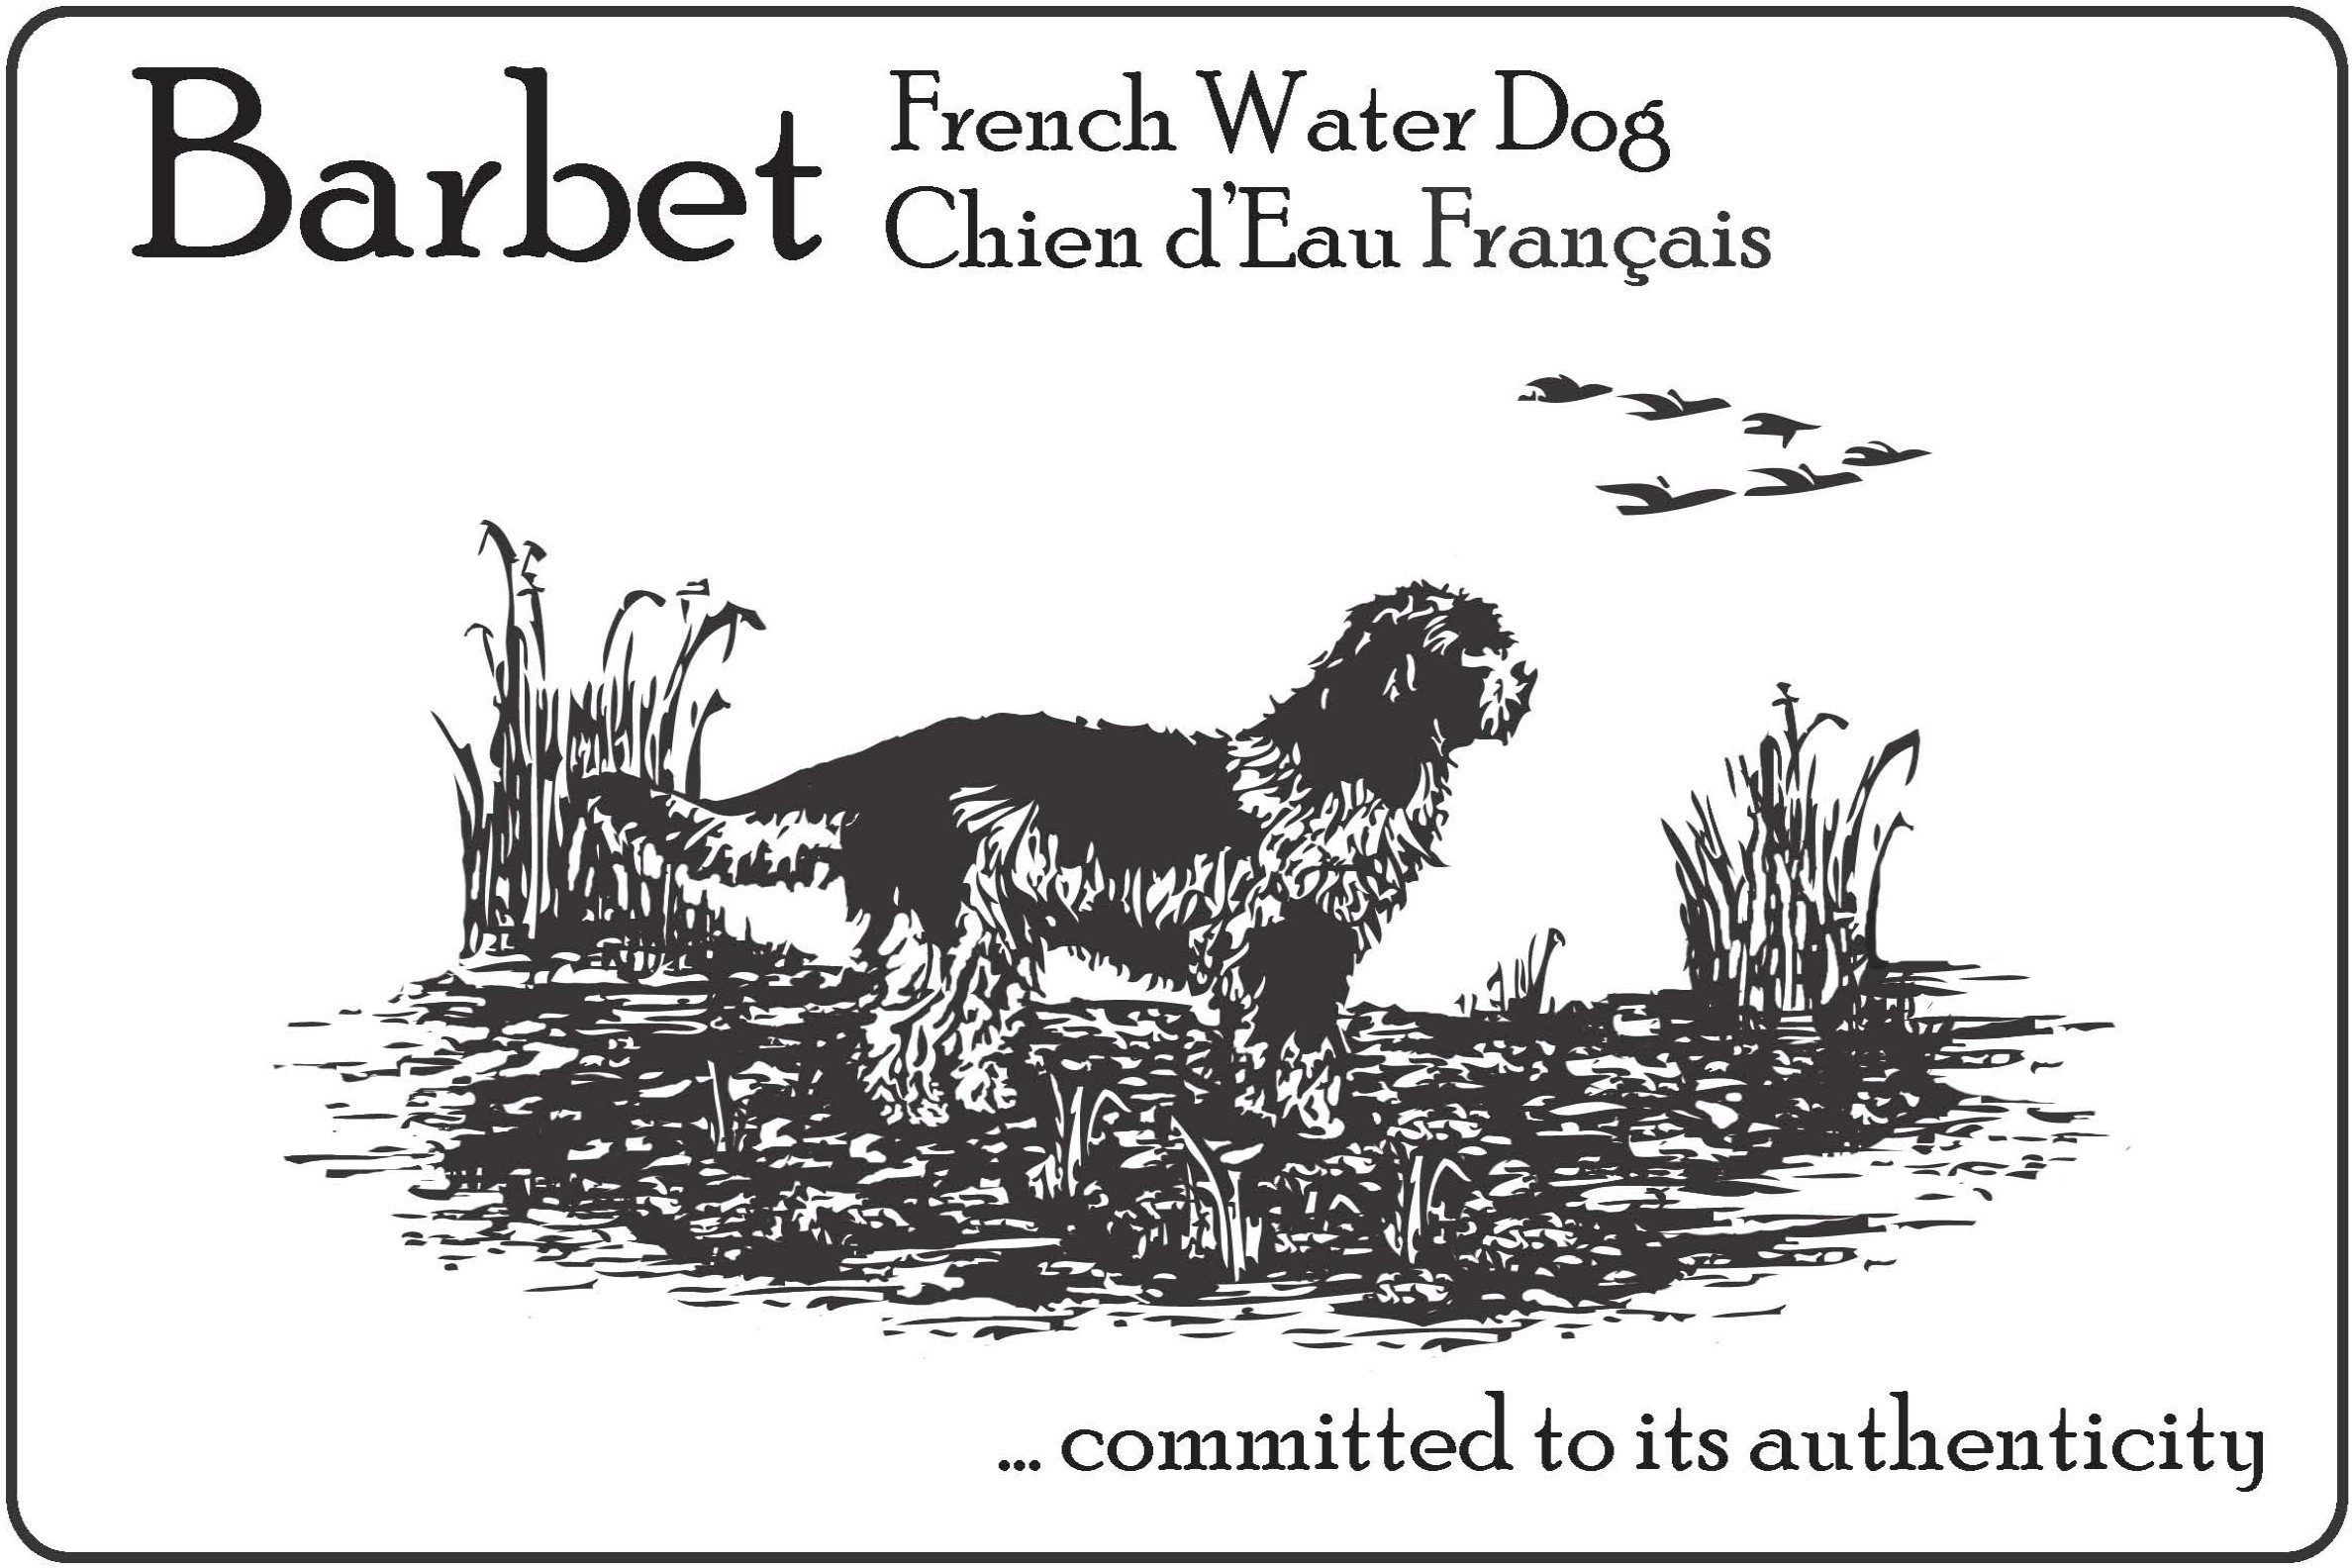 Barbet: French Waterdog